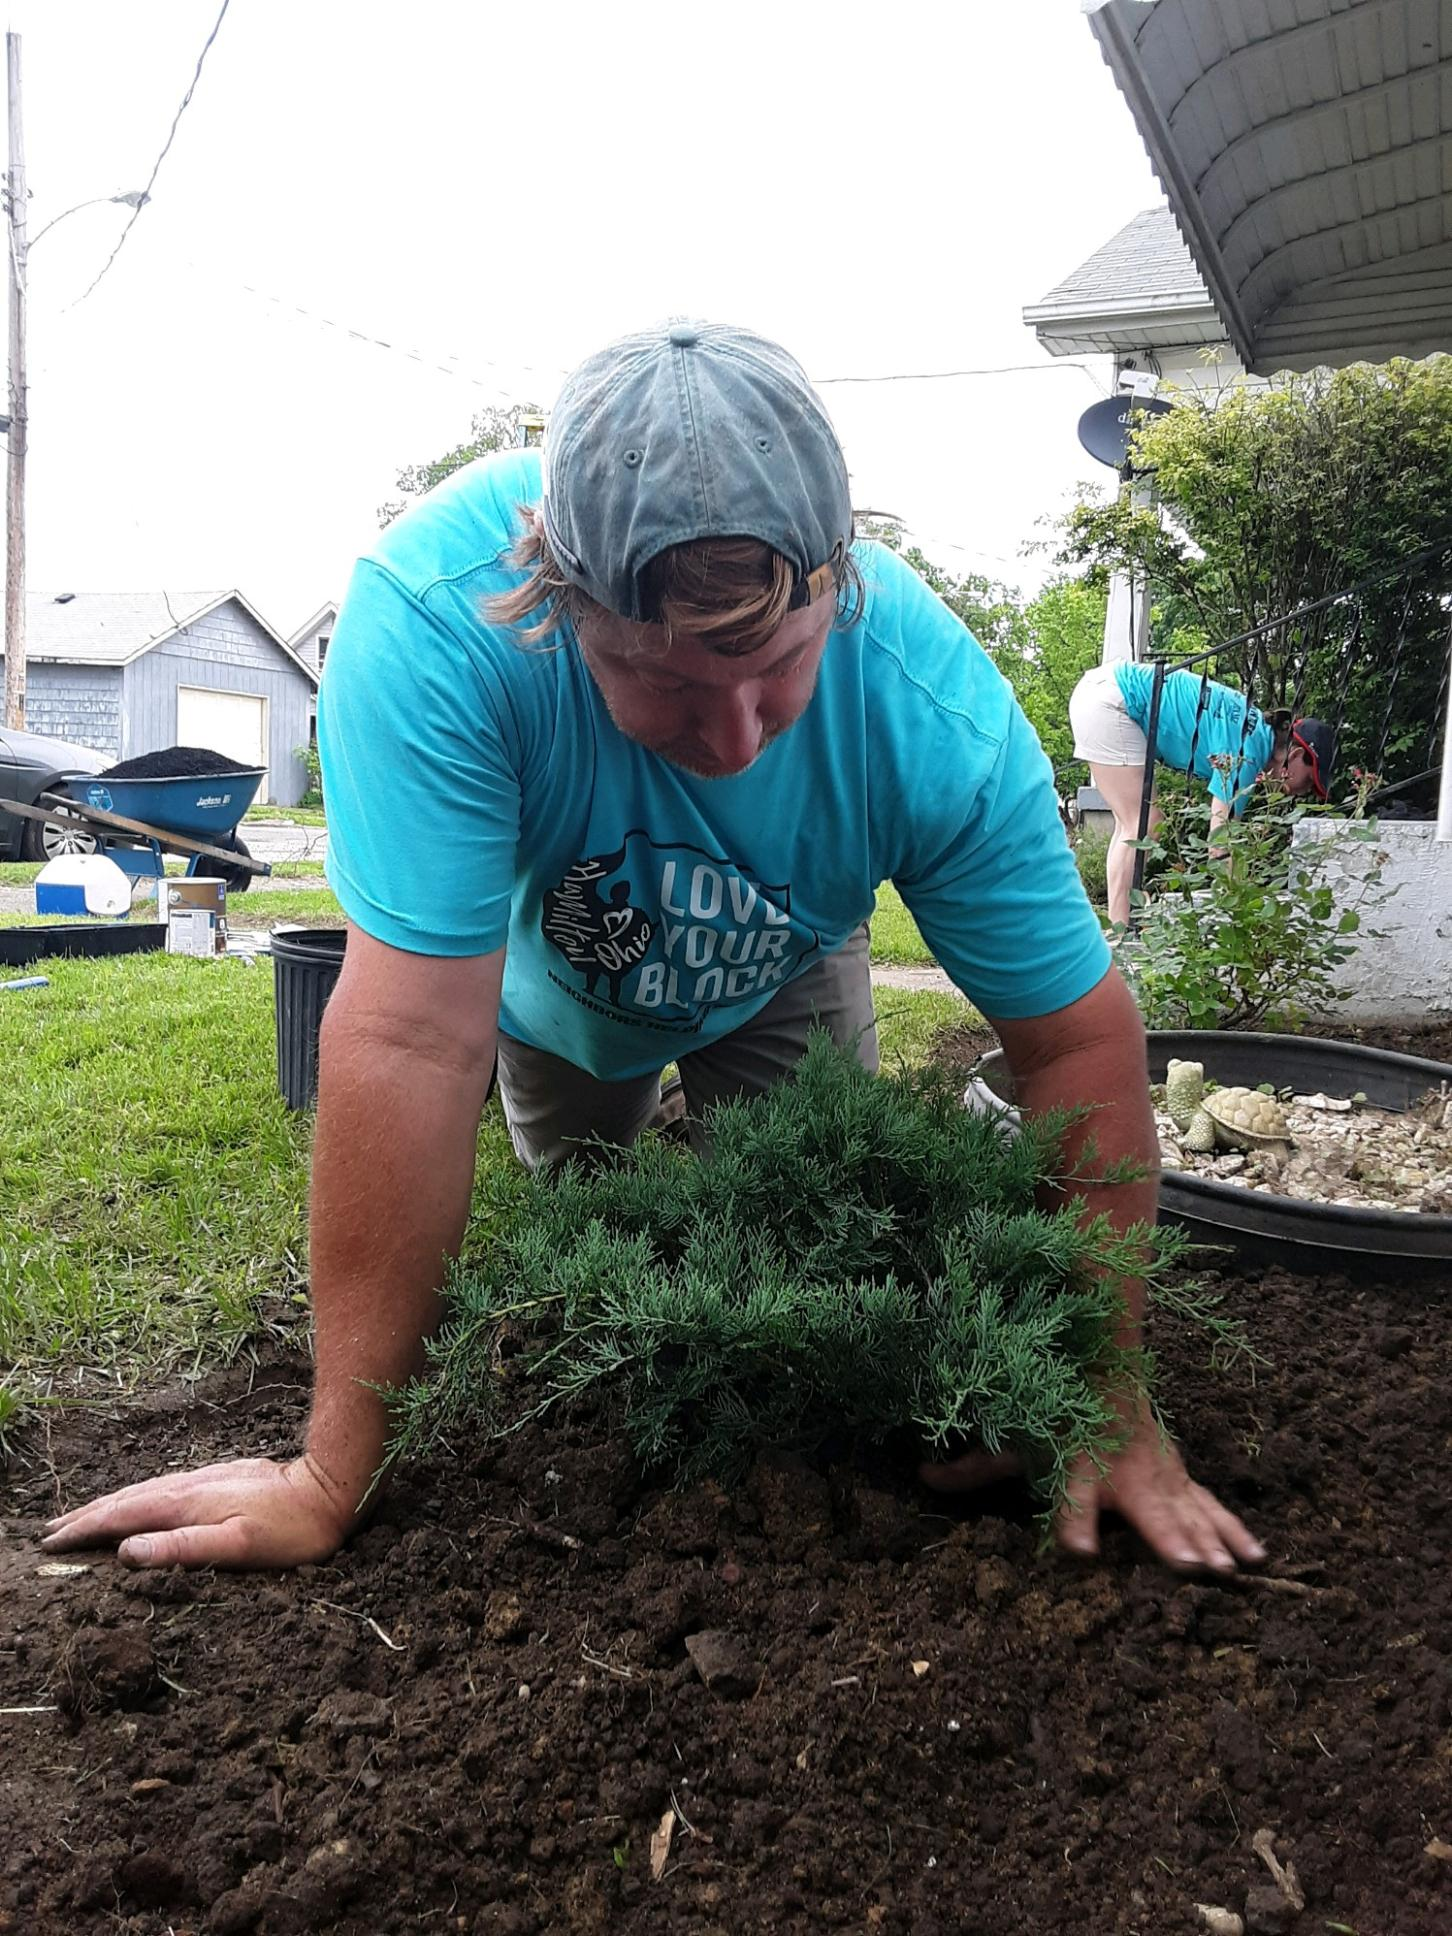 Community Partners - Andy Weltzer, owner of Lifestyle Landscaping Solutions, donated mulch, plant material, bushes, and volunteer labor to the Love Your Block projects.